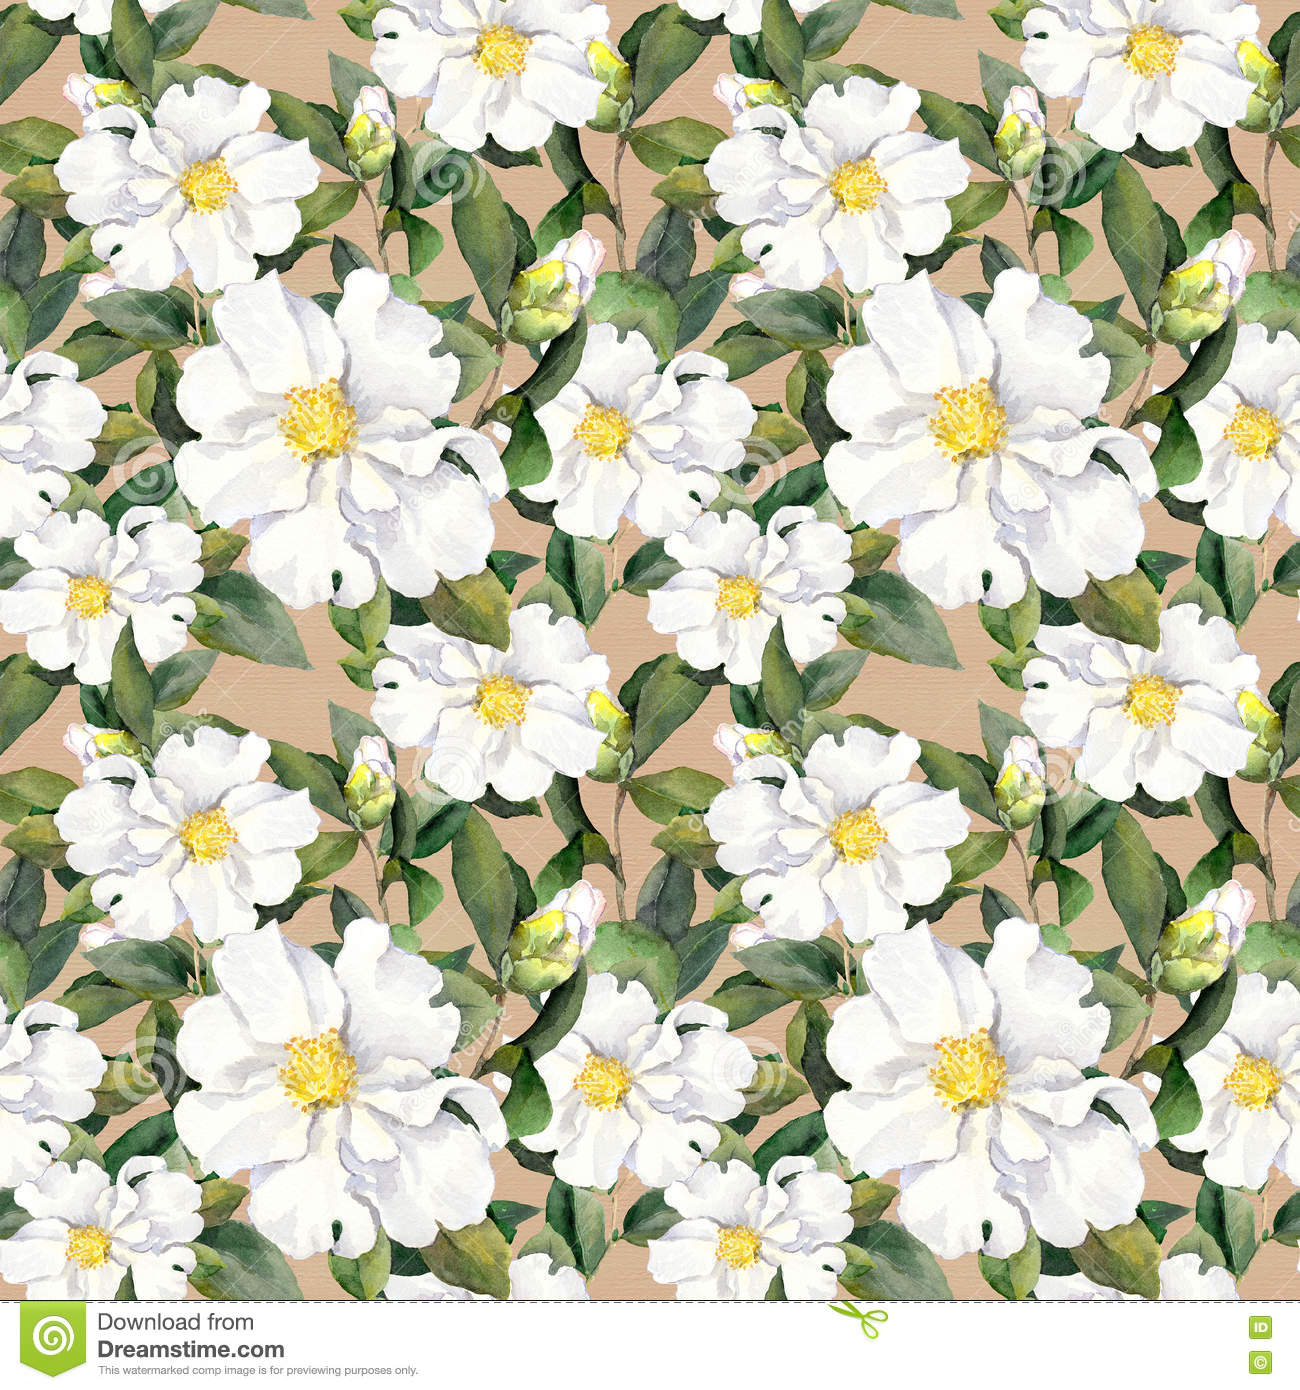 Magnolia Home Wallpaper Seamless Floral Wallpaper With White Flowers Magnolia